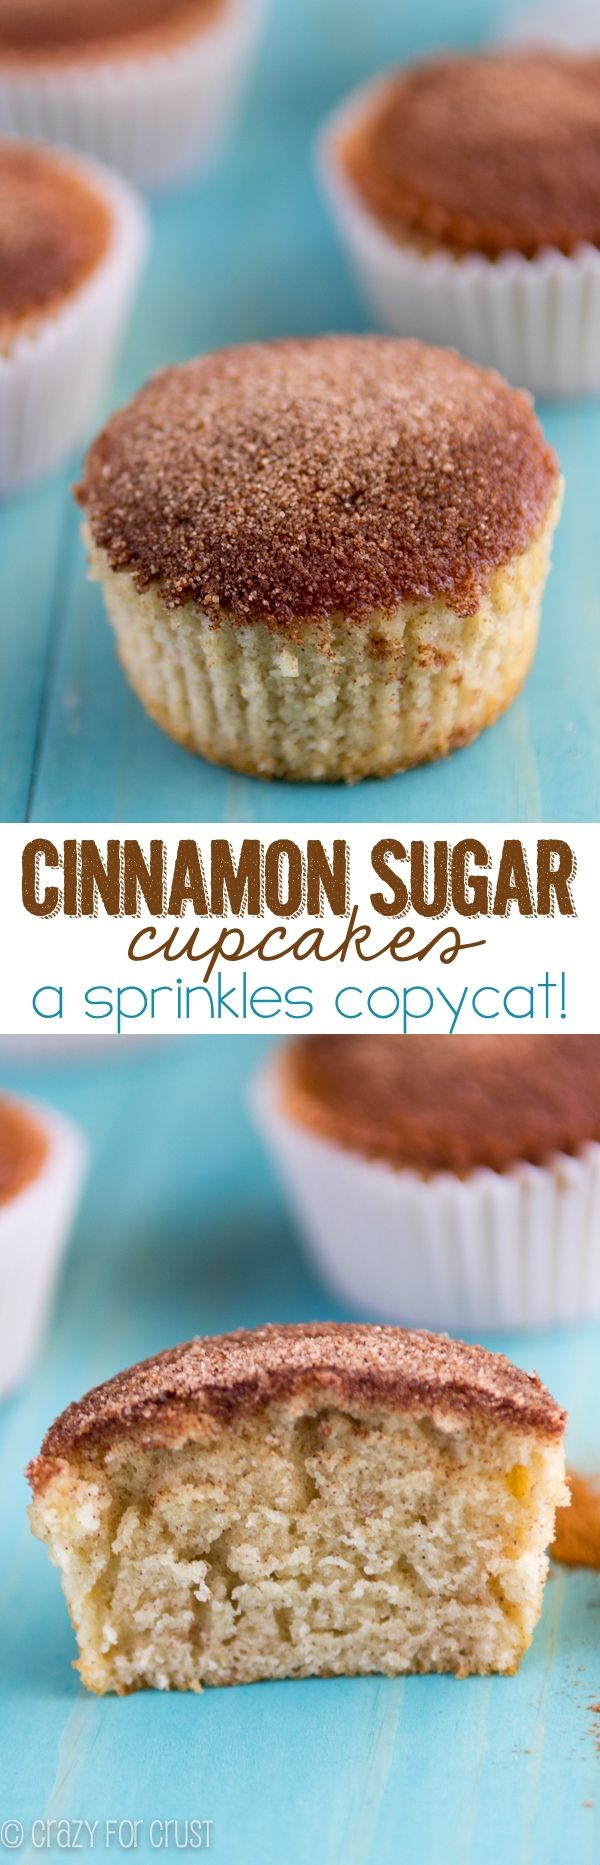 Cinnamon Sugar Cupcakes - a Sprinkles Bakery Copycat Recipe! An easy cupcake recipe that's fool proof and full of cinnamon sugar.